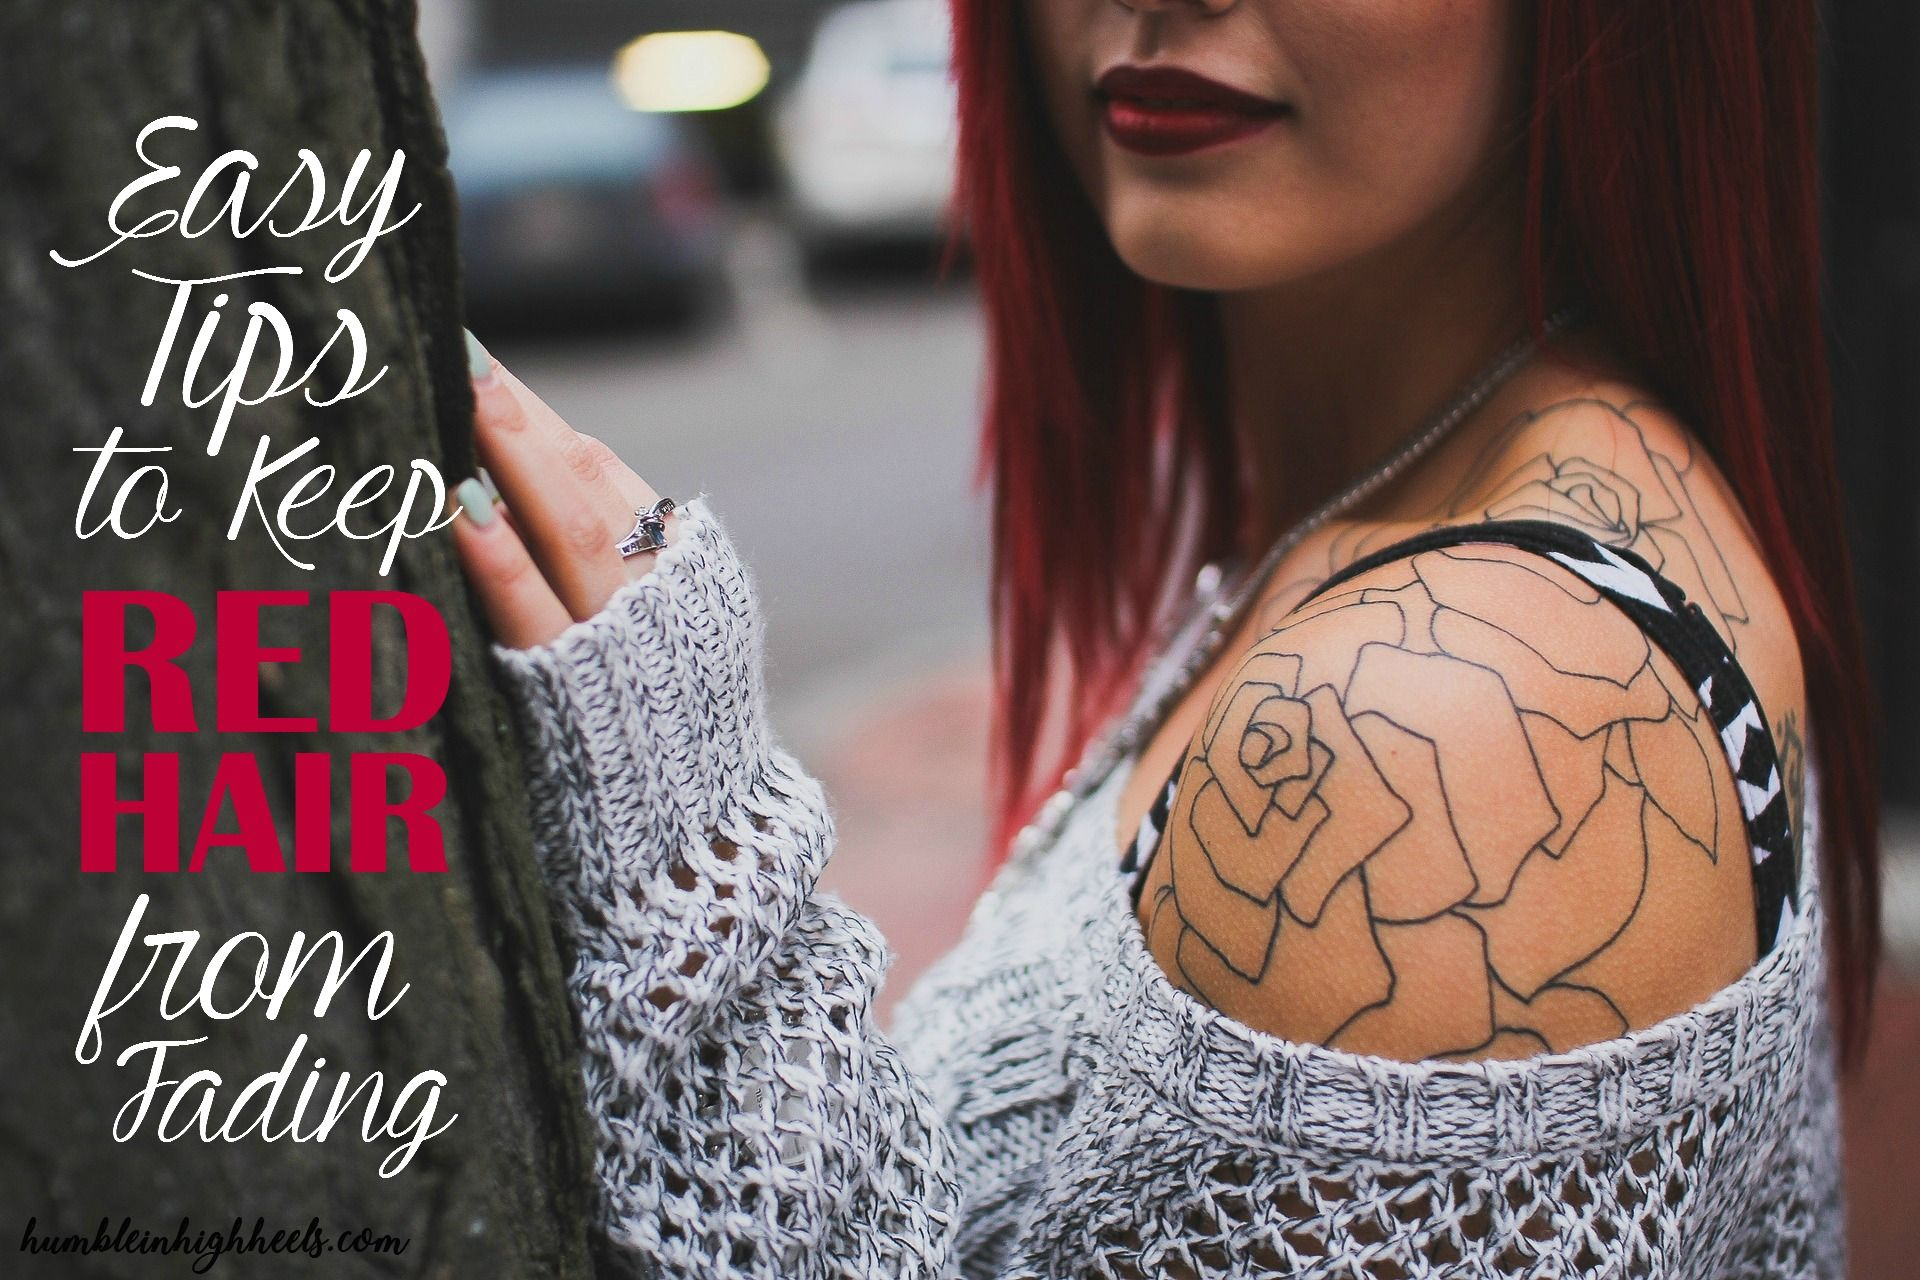 Easy Tips To Keep Red Hair From Fading Tattoo removal